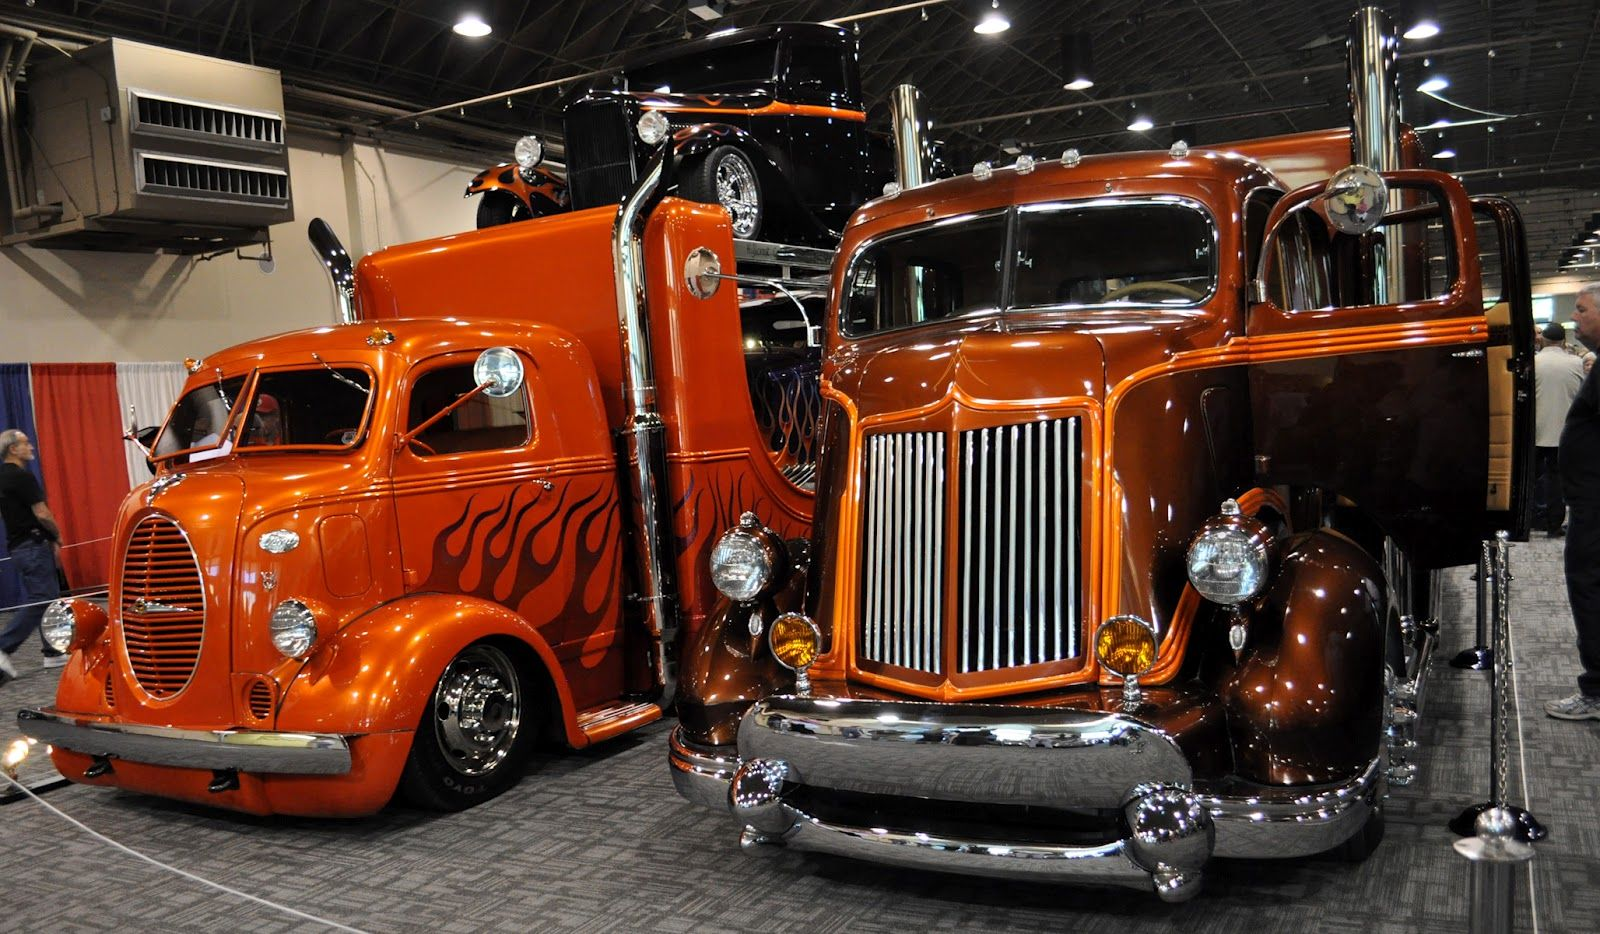 1956 chevy tattoo submited images pic2fly - Caminh Es E Utilit Rios By Daniel Alho Big Rig Custom Car Haulers On The Vintage Side